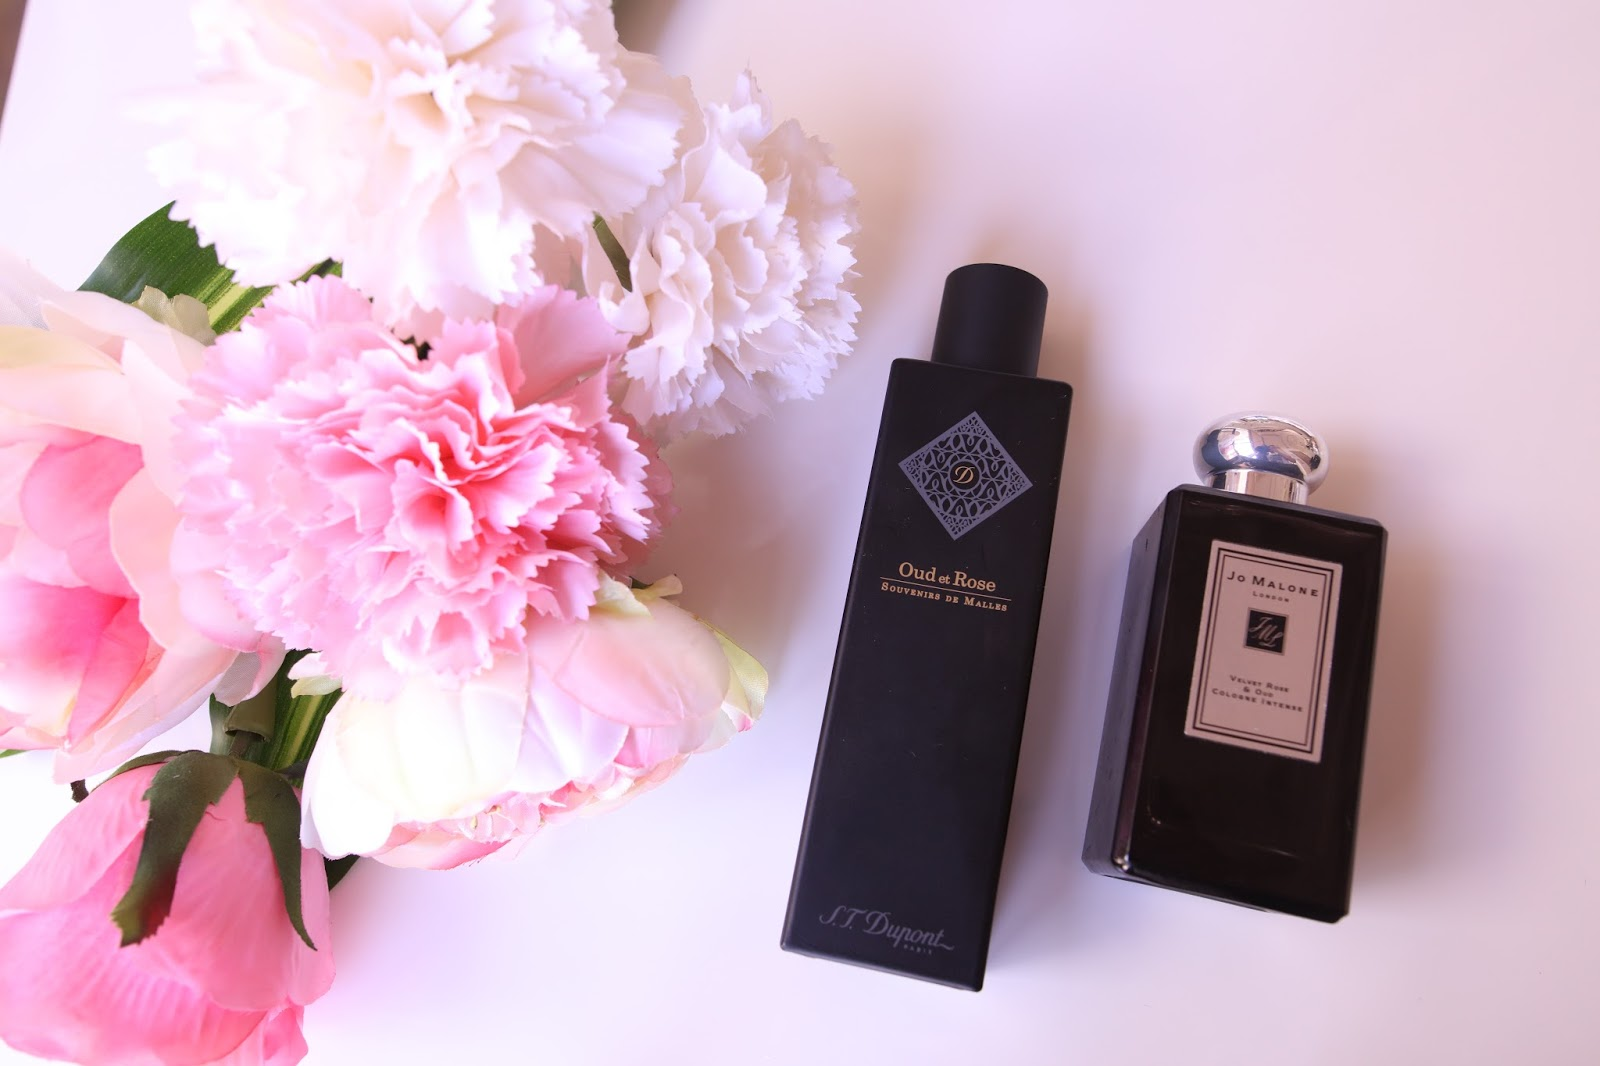 a4b9f5472 Youtube Video: Perfumes I am Loving lately | WalaHearts | Bloglovin'